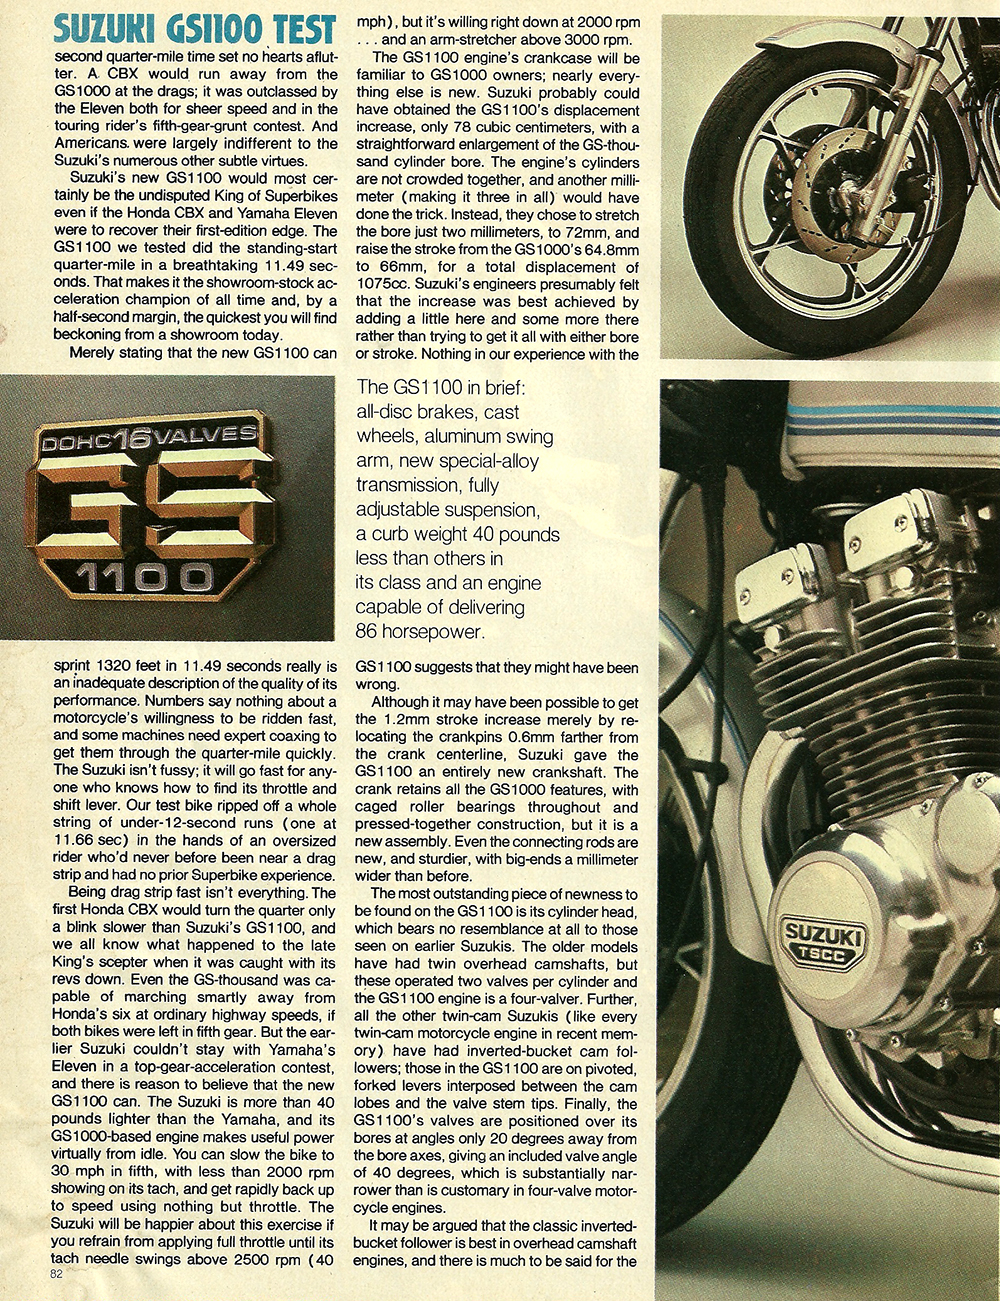 1980 Suzuki GS1100 ET road test 03.jpg